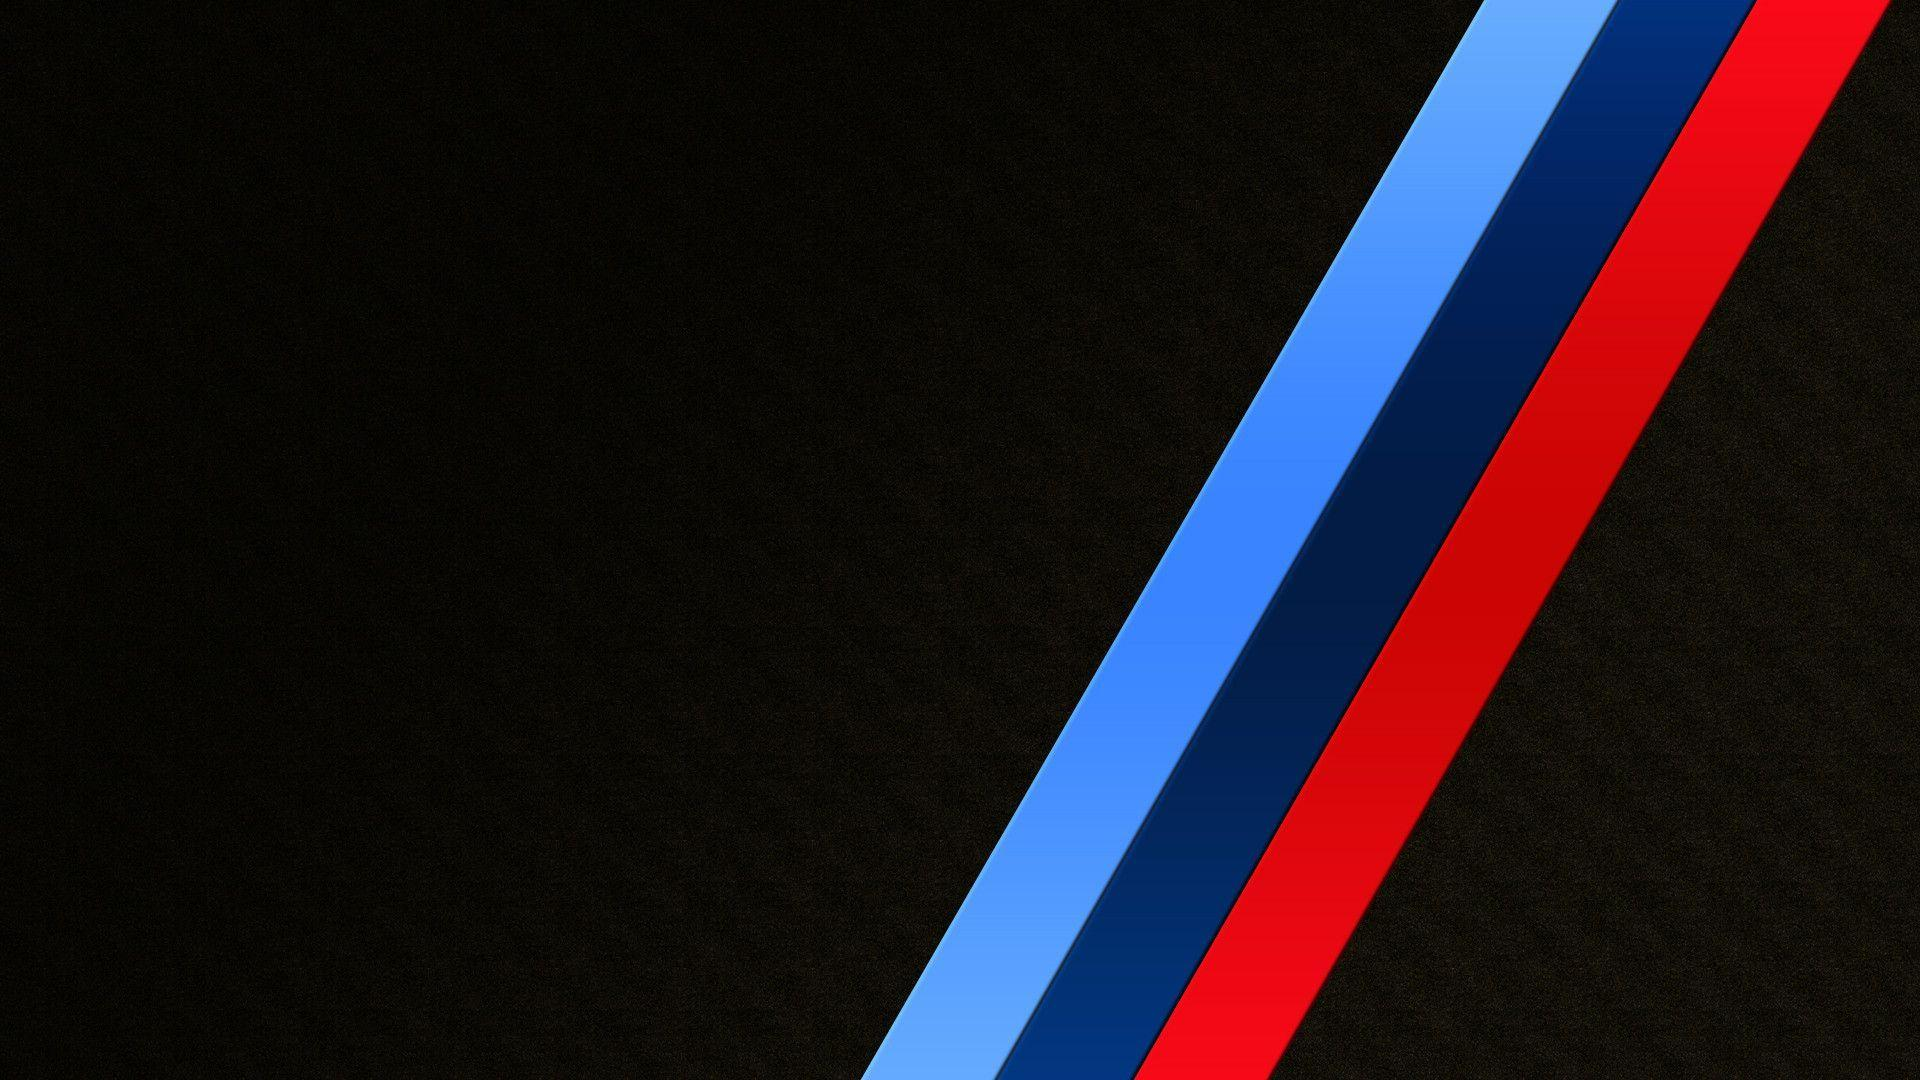 bmw m android wallpaper unique bmw m logo wallpapers wallpaper cave